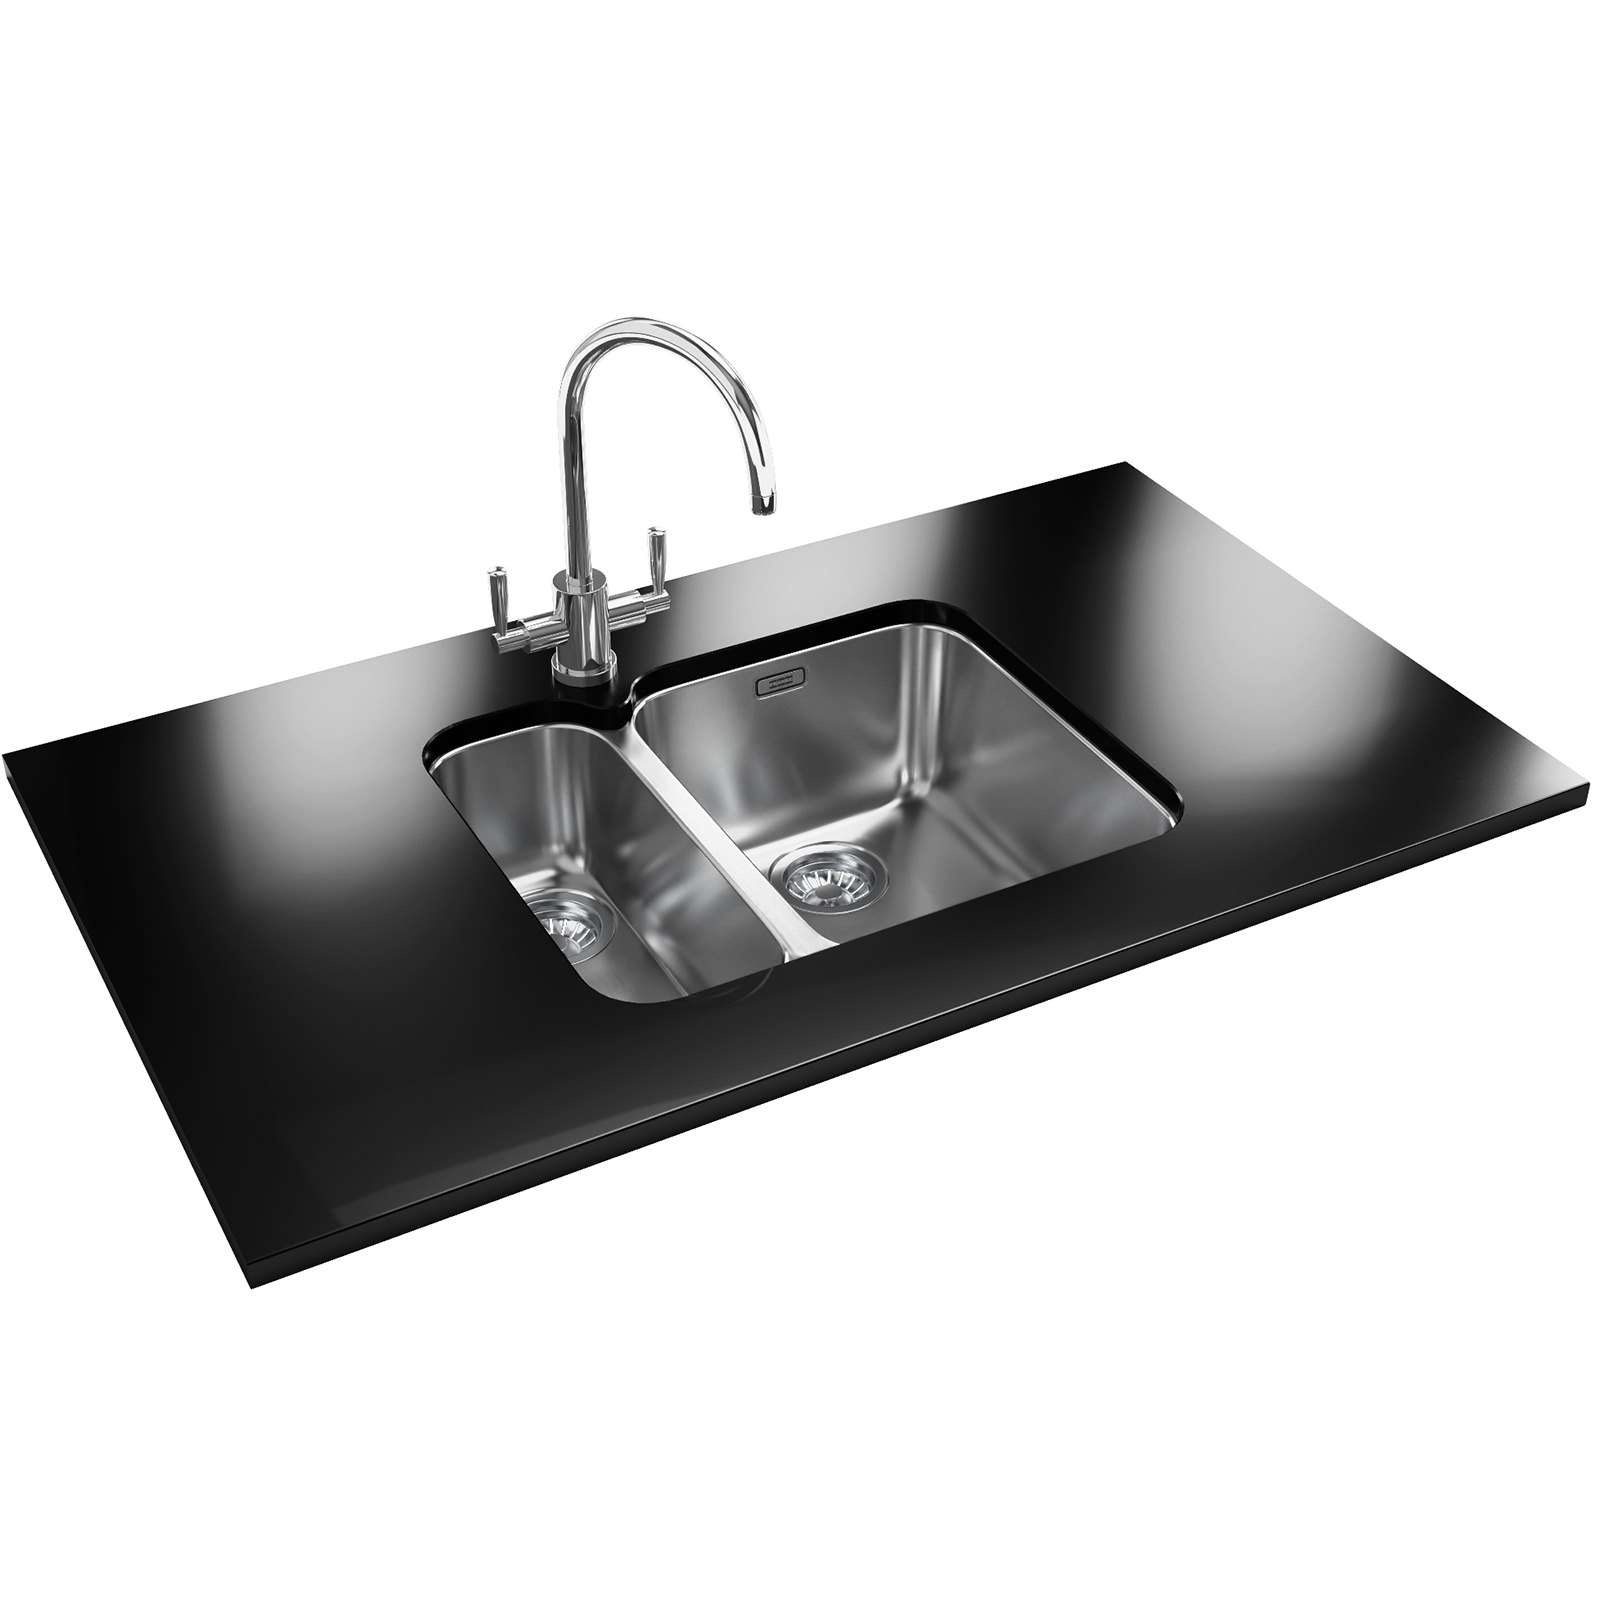 Franke ariane designer pack arx 160d stainless steel sink for Designer stainless steel sinks